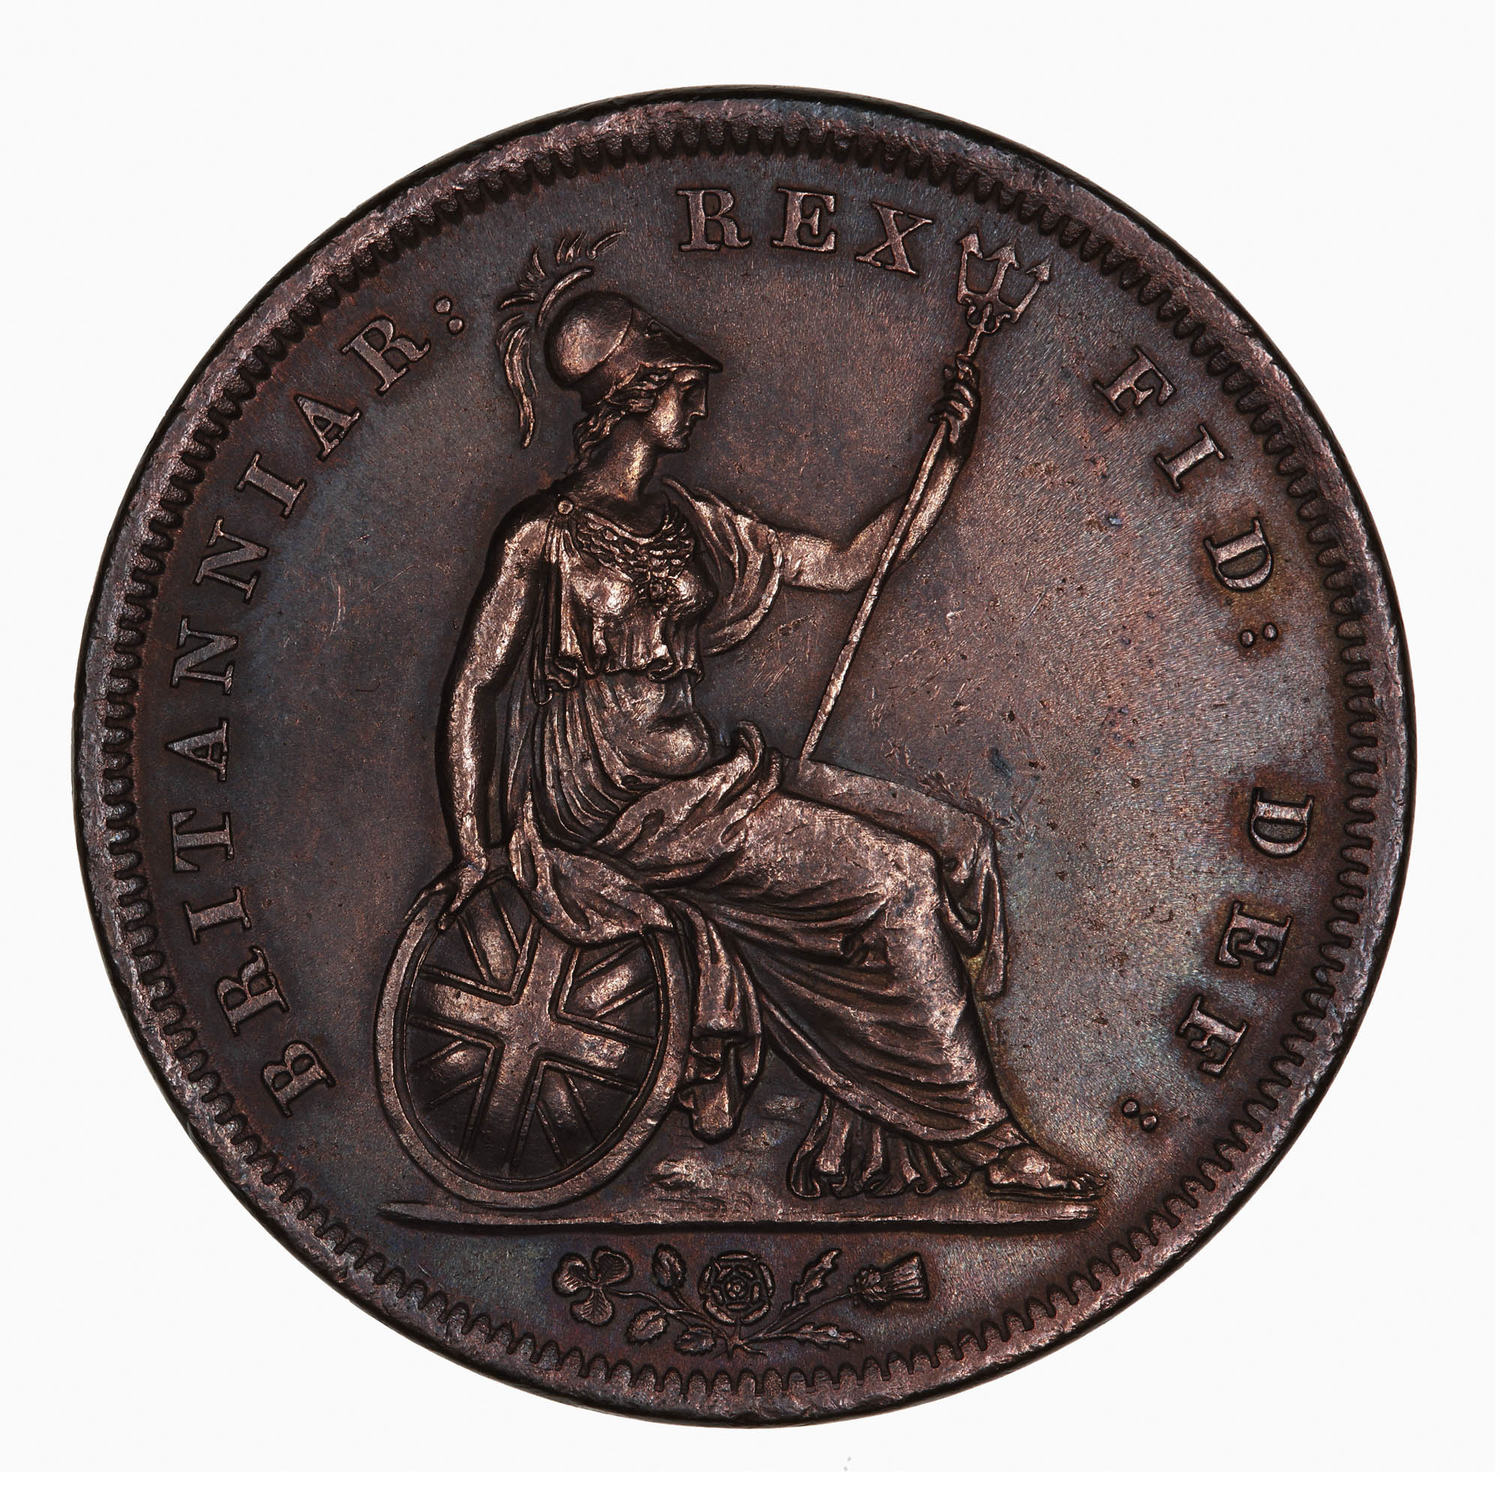 Penny 1826: Photo Coin - 1 Penny, George IV, Great Britain, 1826